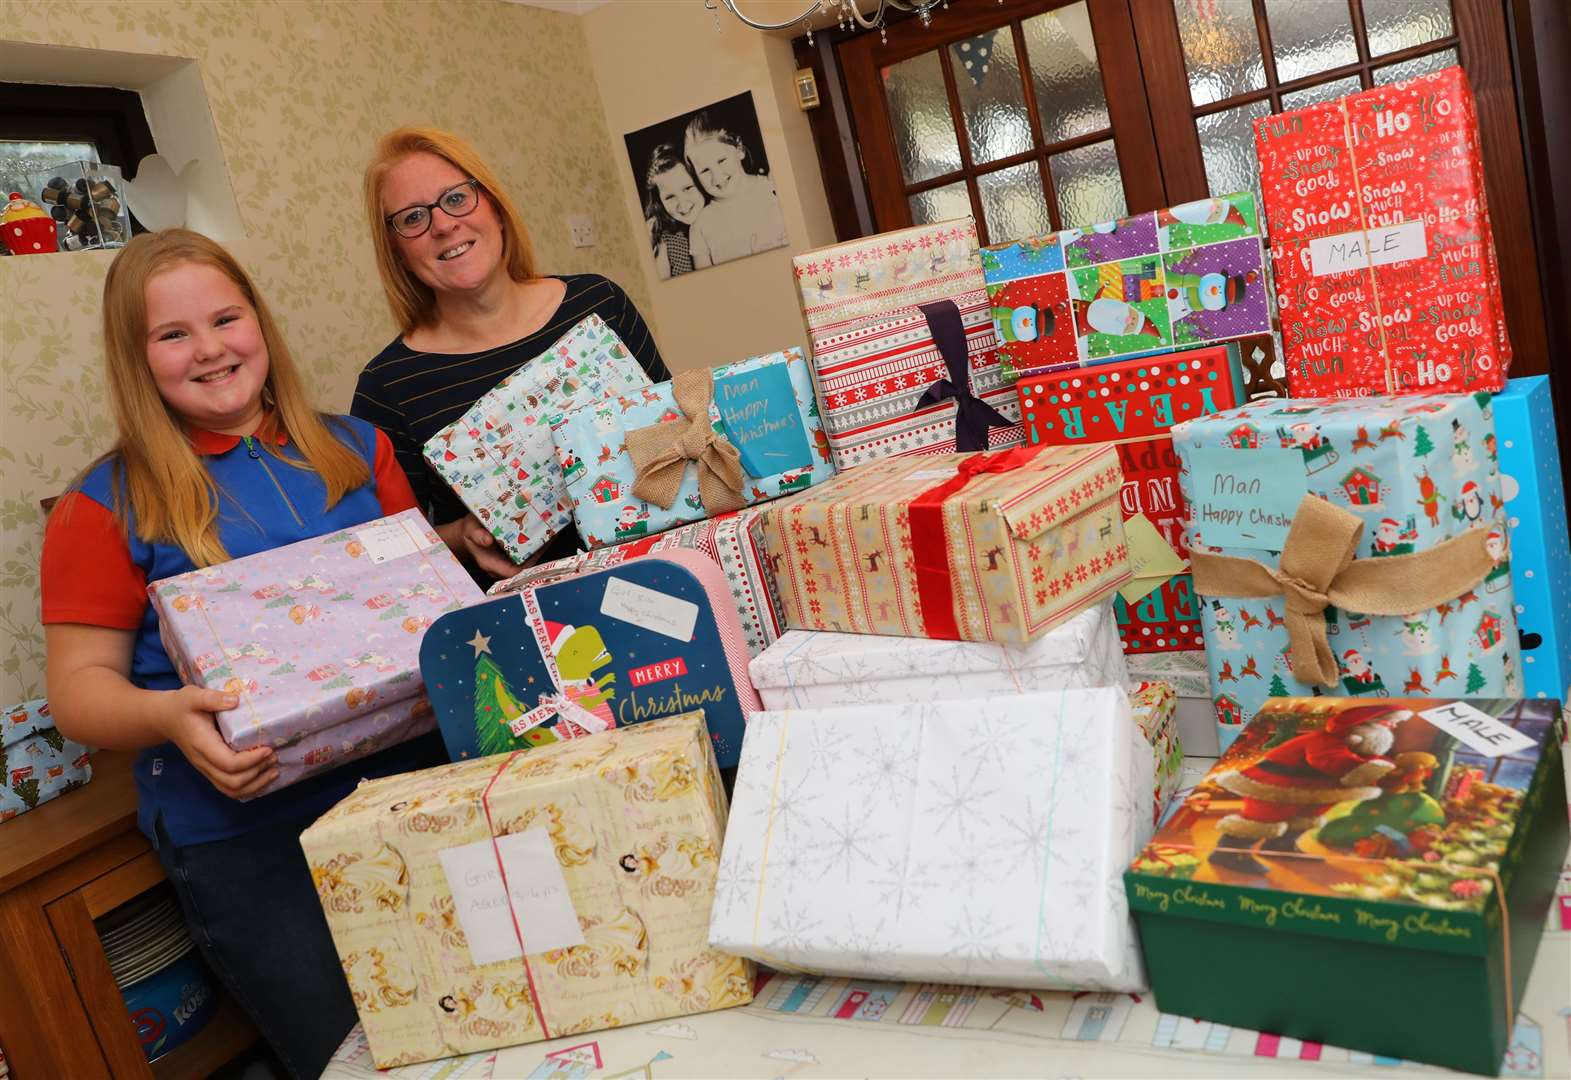 Family's appeal for gifts for homeless